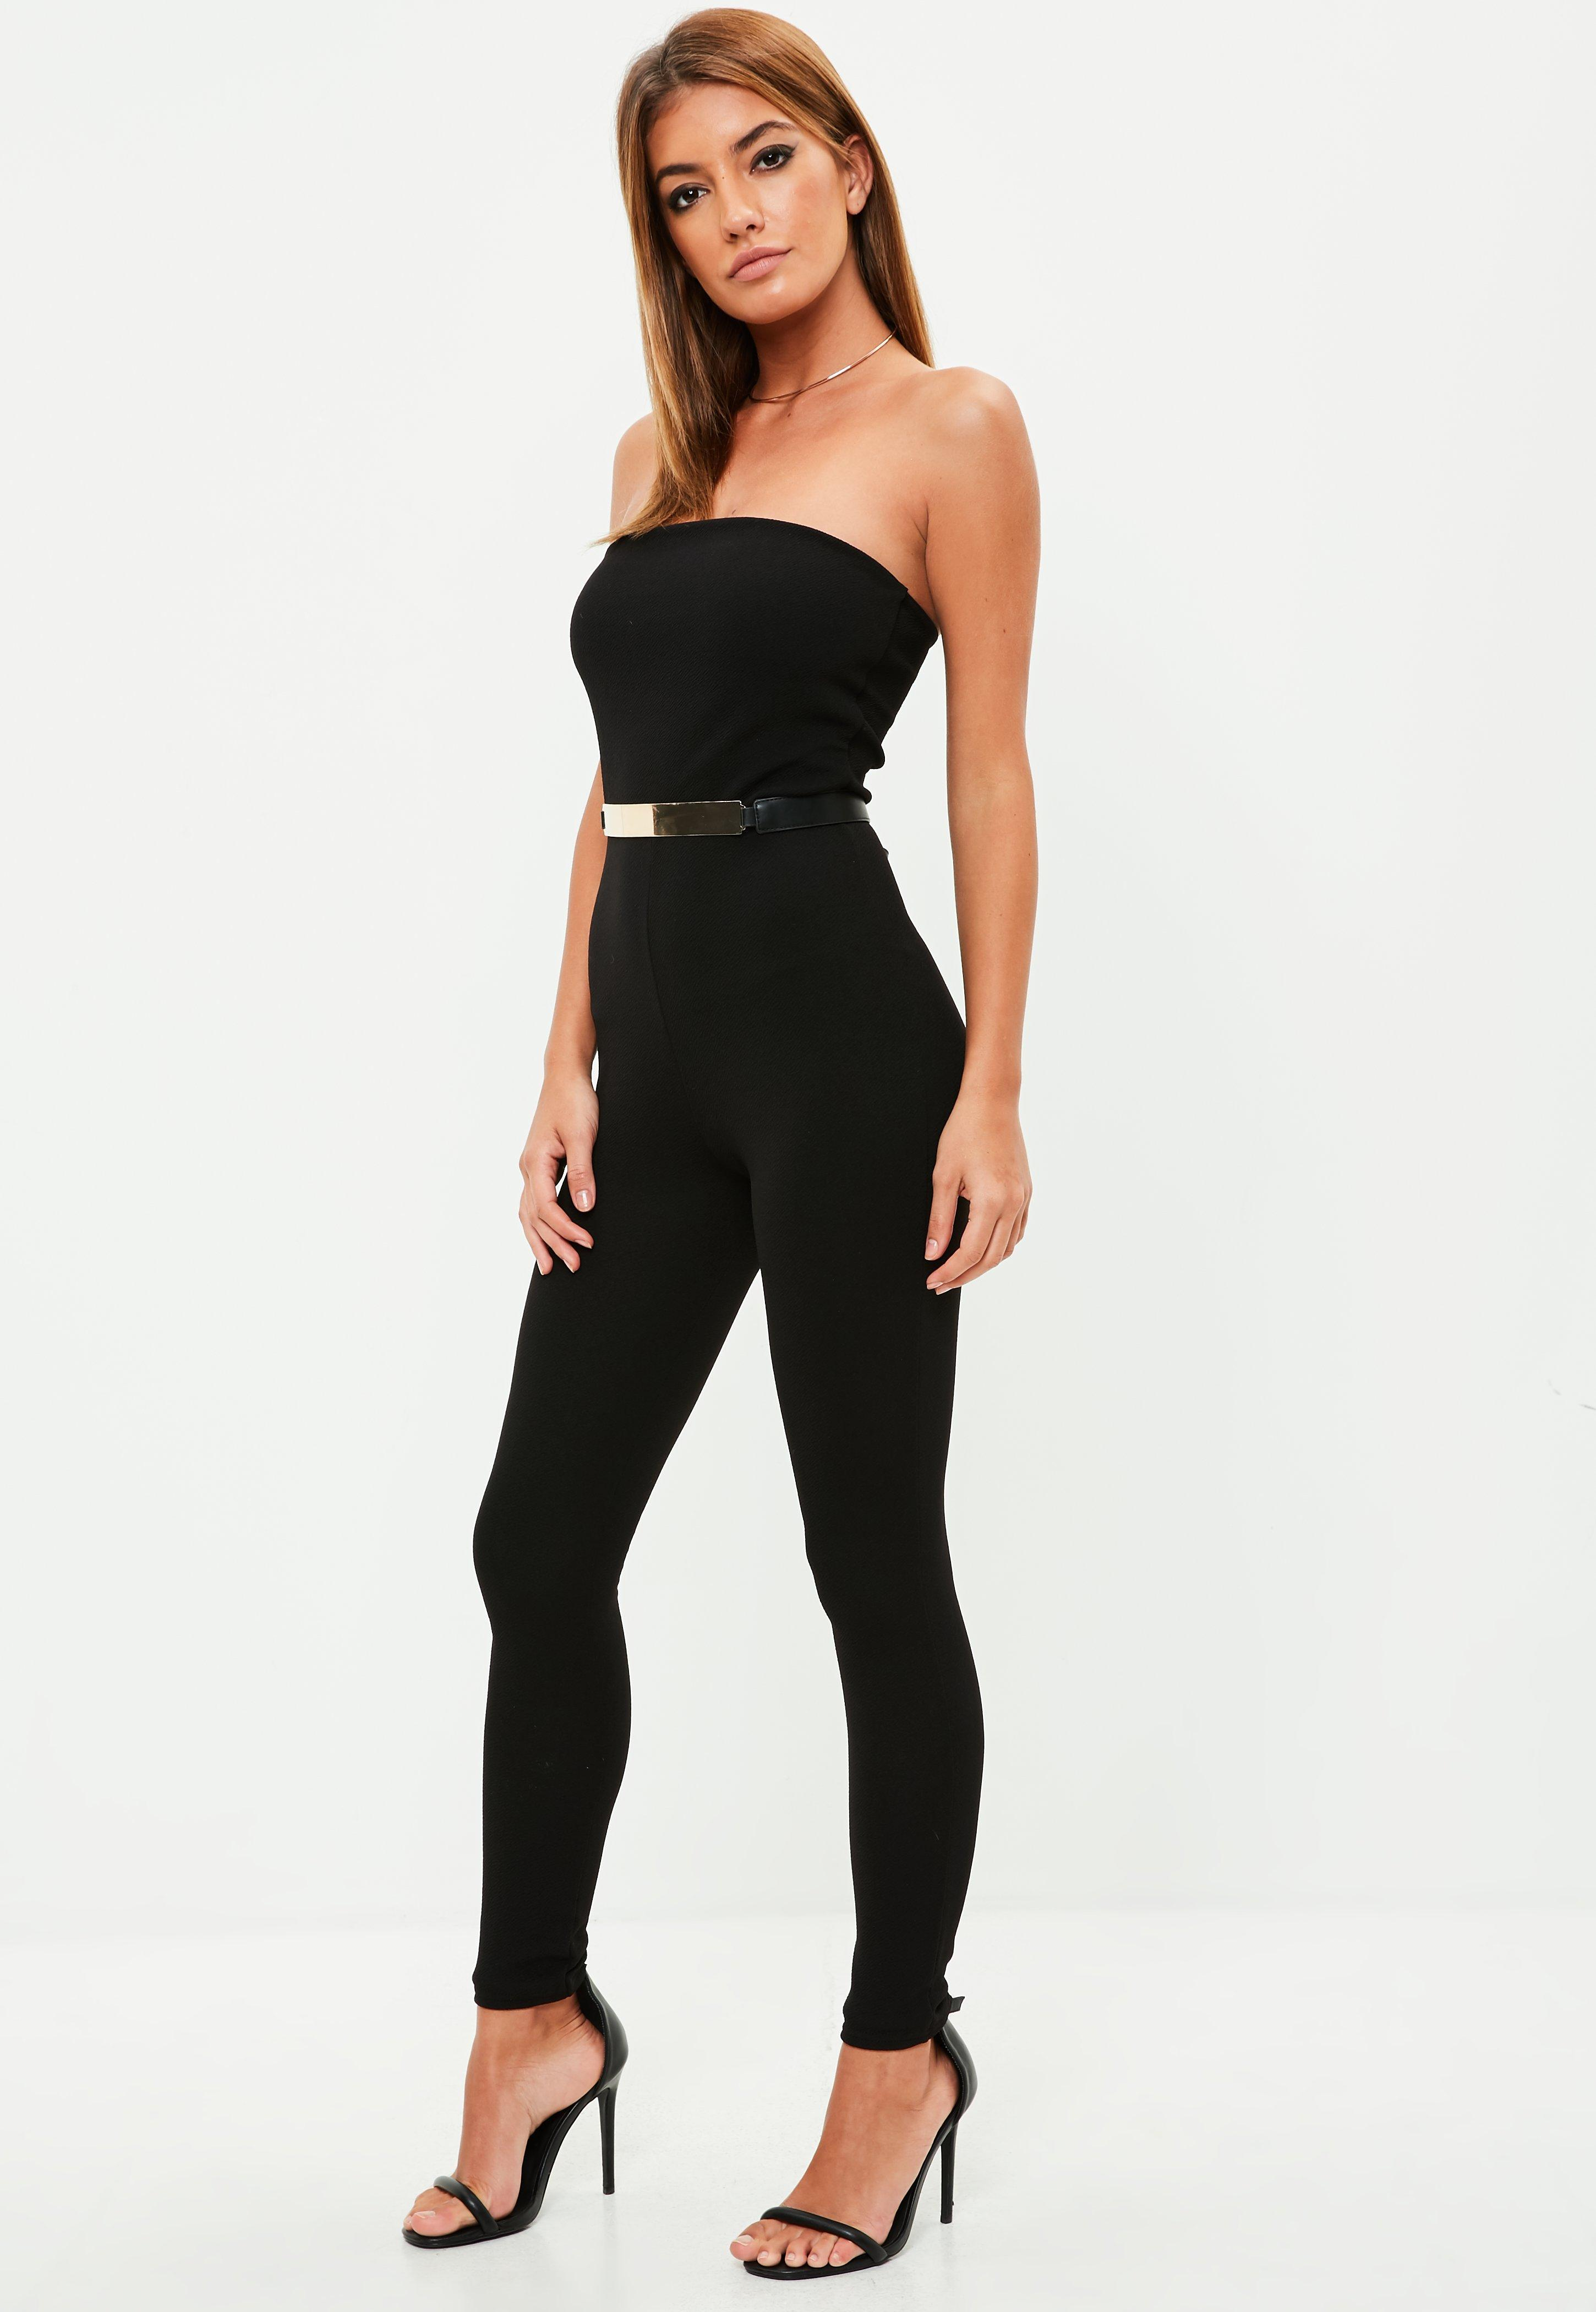 596f9704d921 Missguided Black Bandeau Crepe Straight Leg Unitard in Black - Lyst